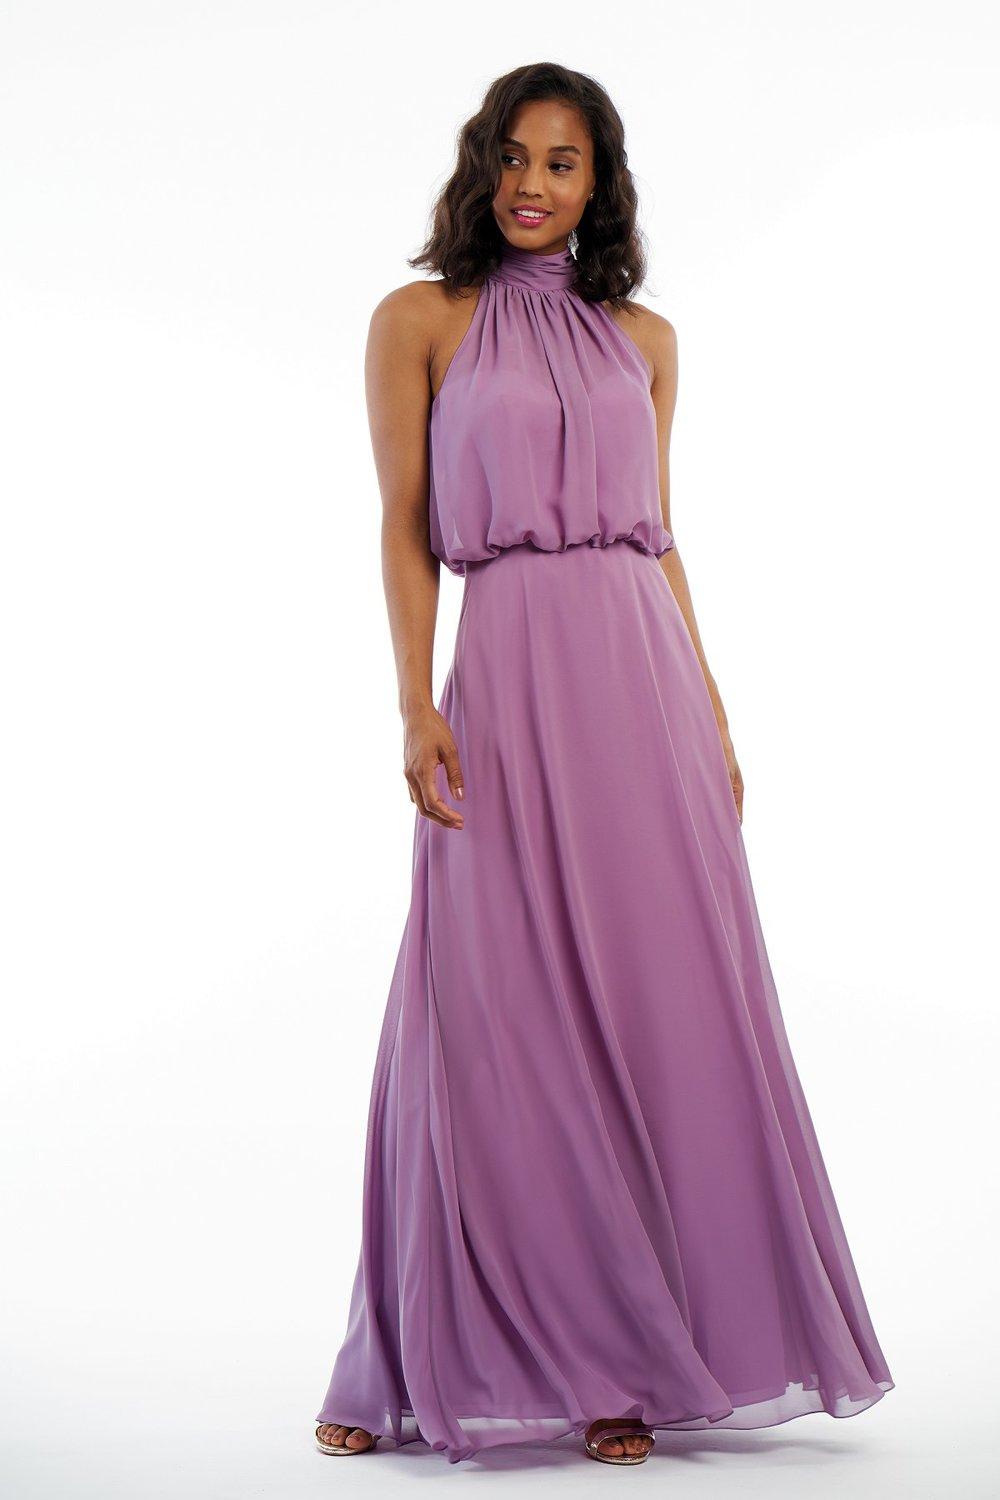 P216008 -  Beautiful charlotte chiffon floor length bridesmaid dress with a gorgeous high neckline, detailed gathers on the bodice, and a flowy skirt to complete the look.    Available in 41 colors